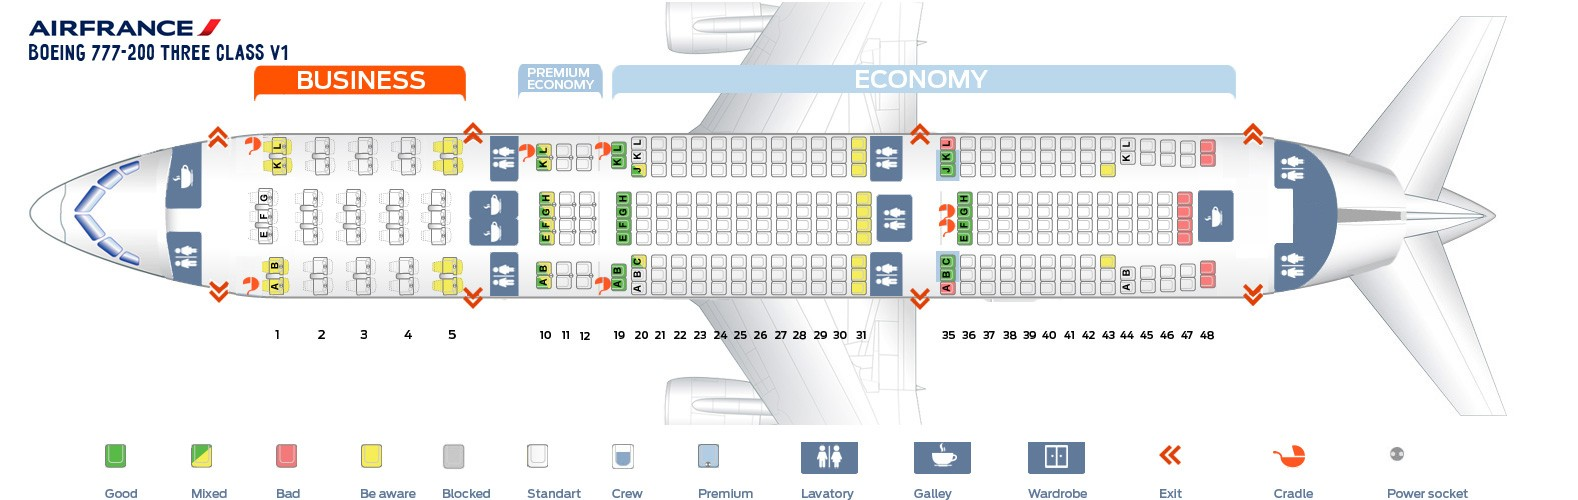 Best Of Boeing 777 200 Seat Map Seat Inspiration